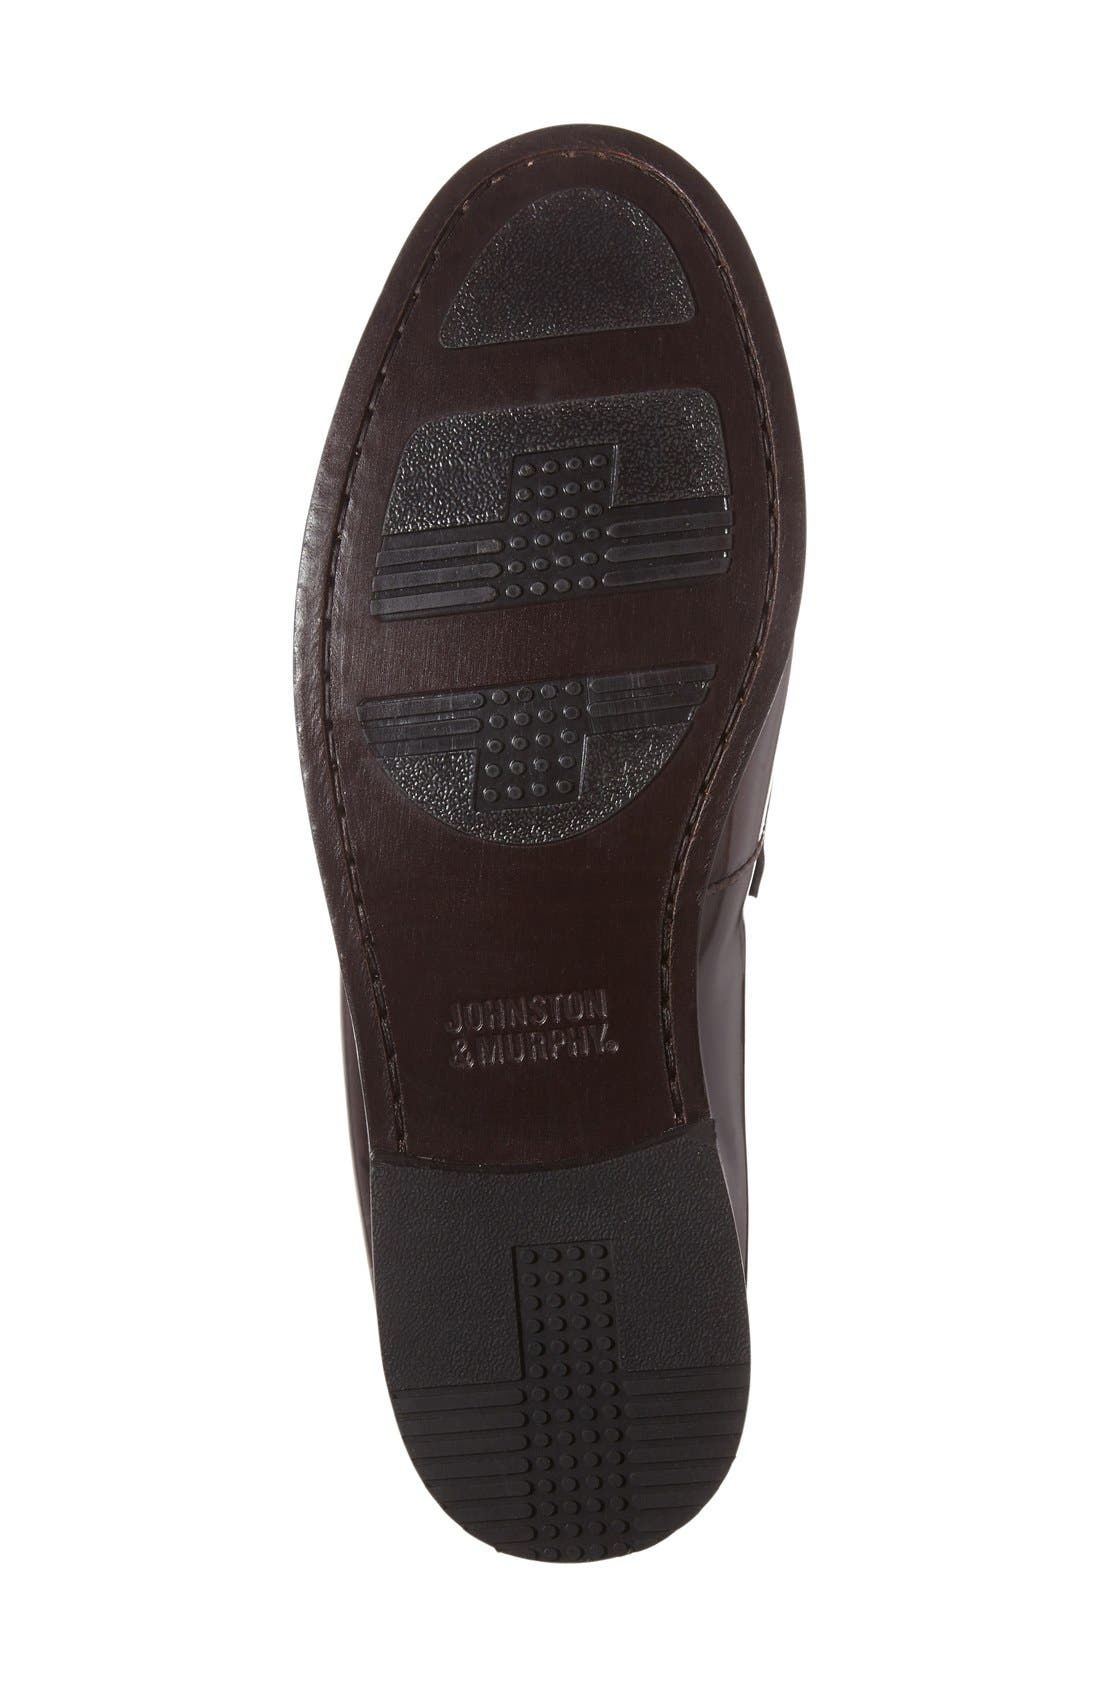 Pannell Penny Loafer,                             Alternate thumbnail 4, color,                             Burgundy Leather